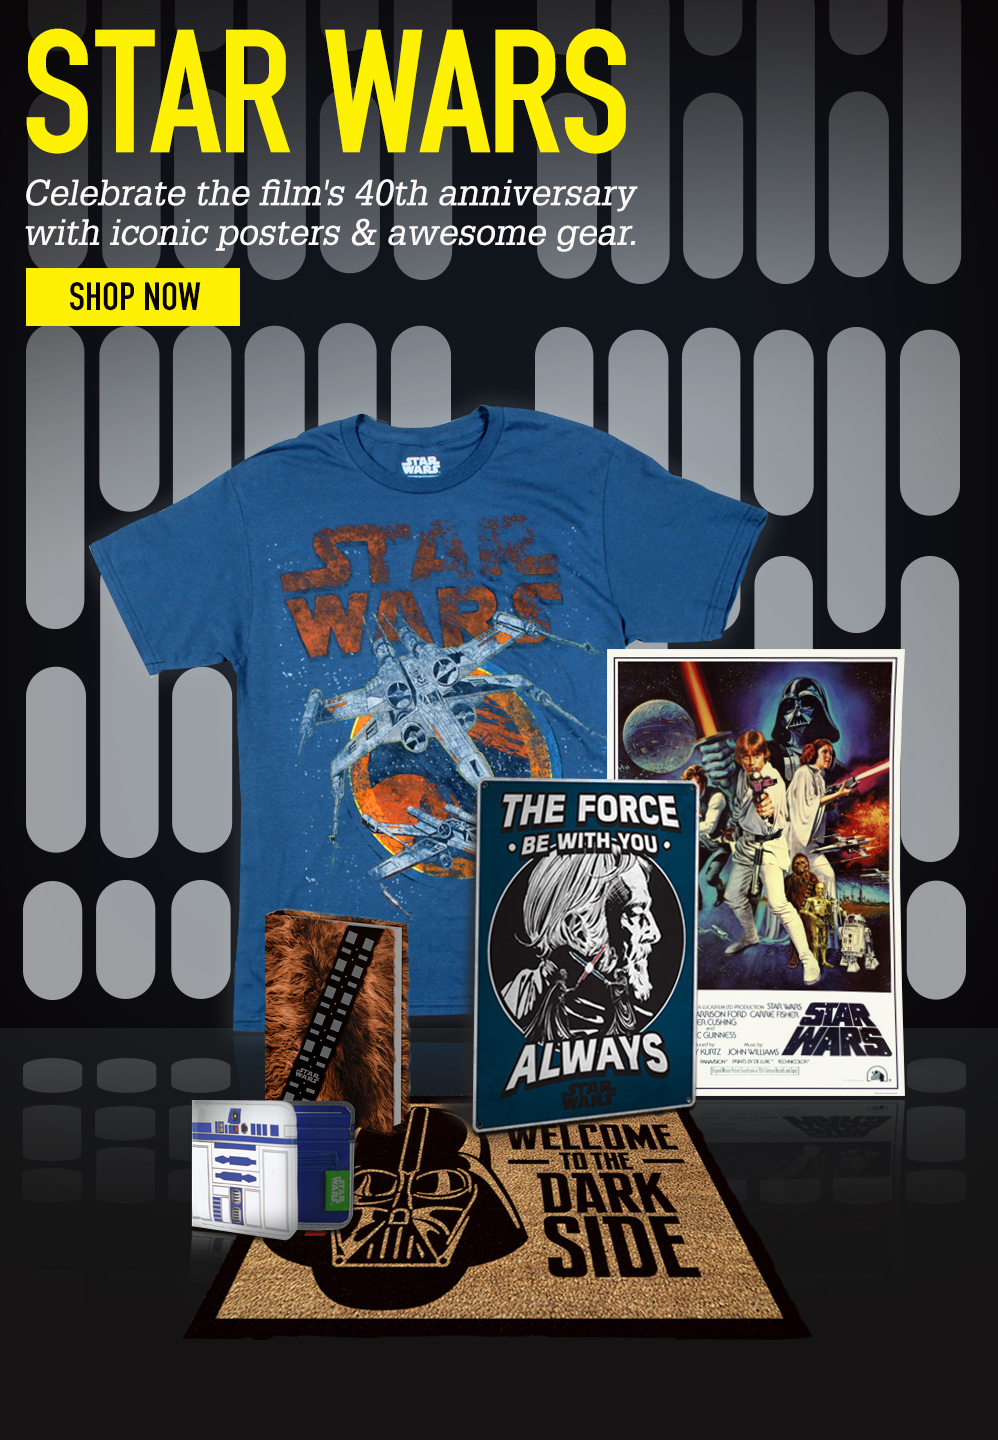 STAR WARS. Celebrate the film's 40th anniversary with iconic posters. SHOP NOW